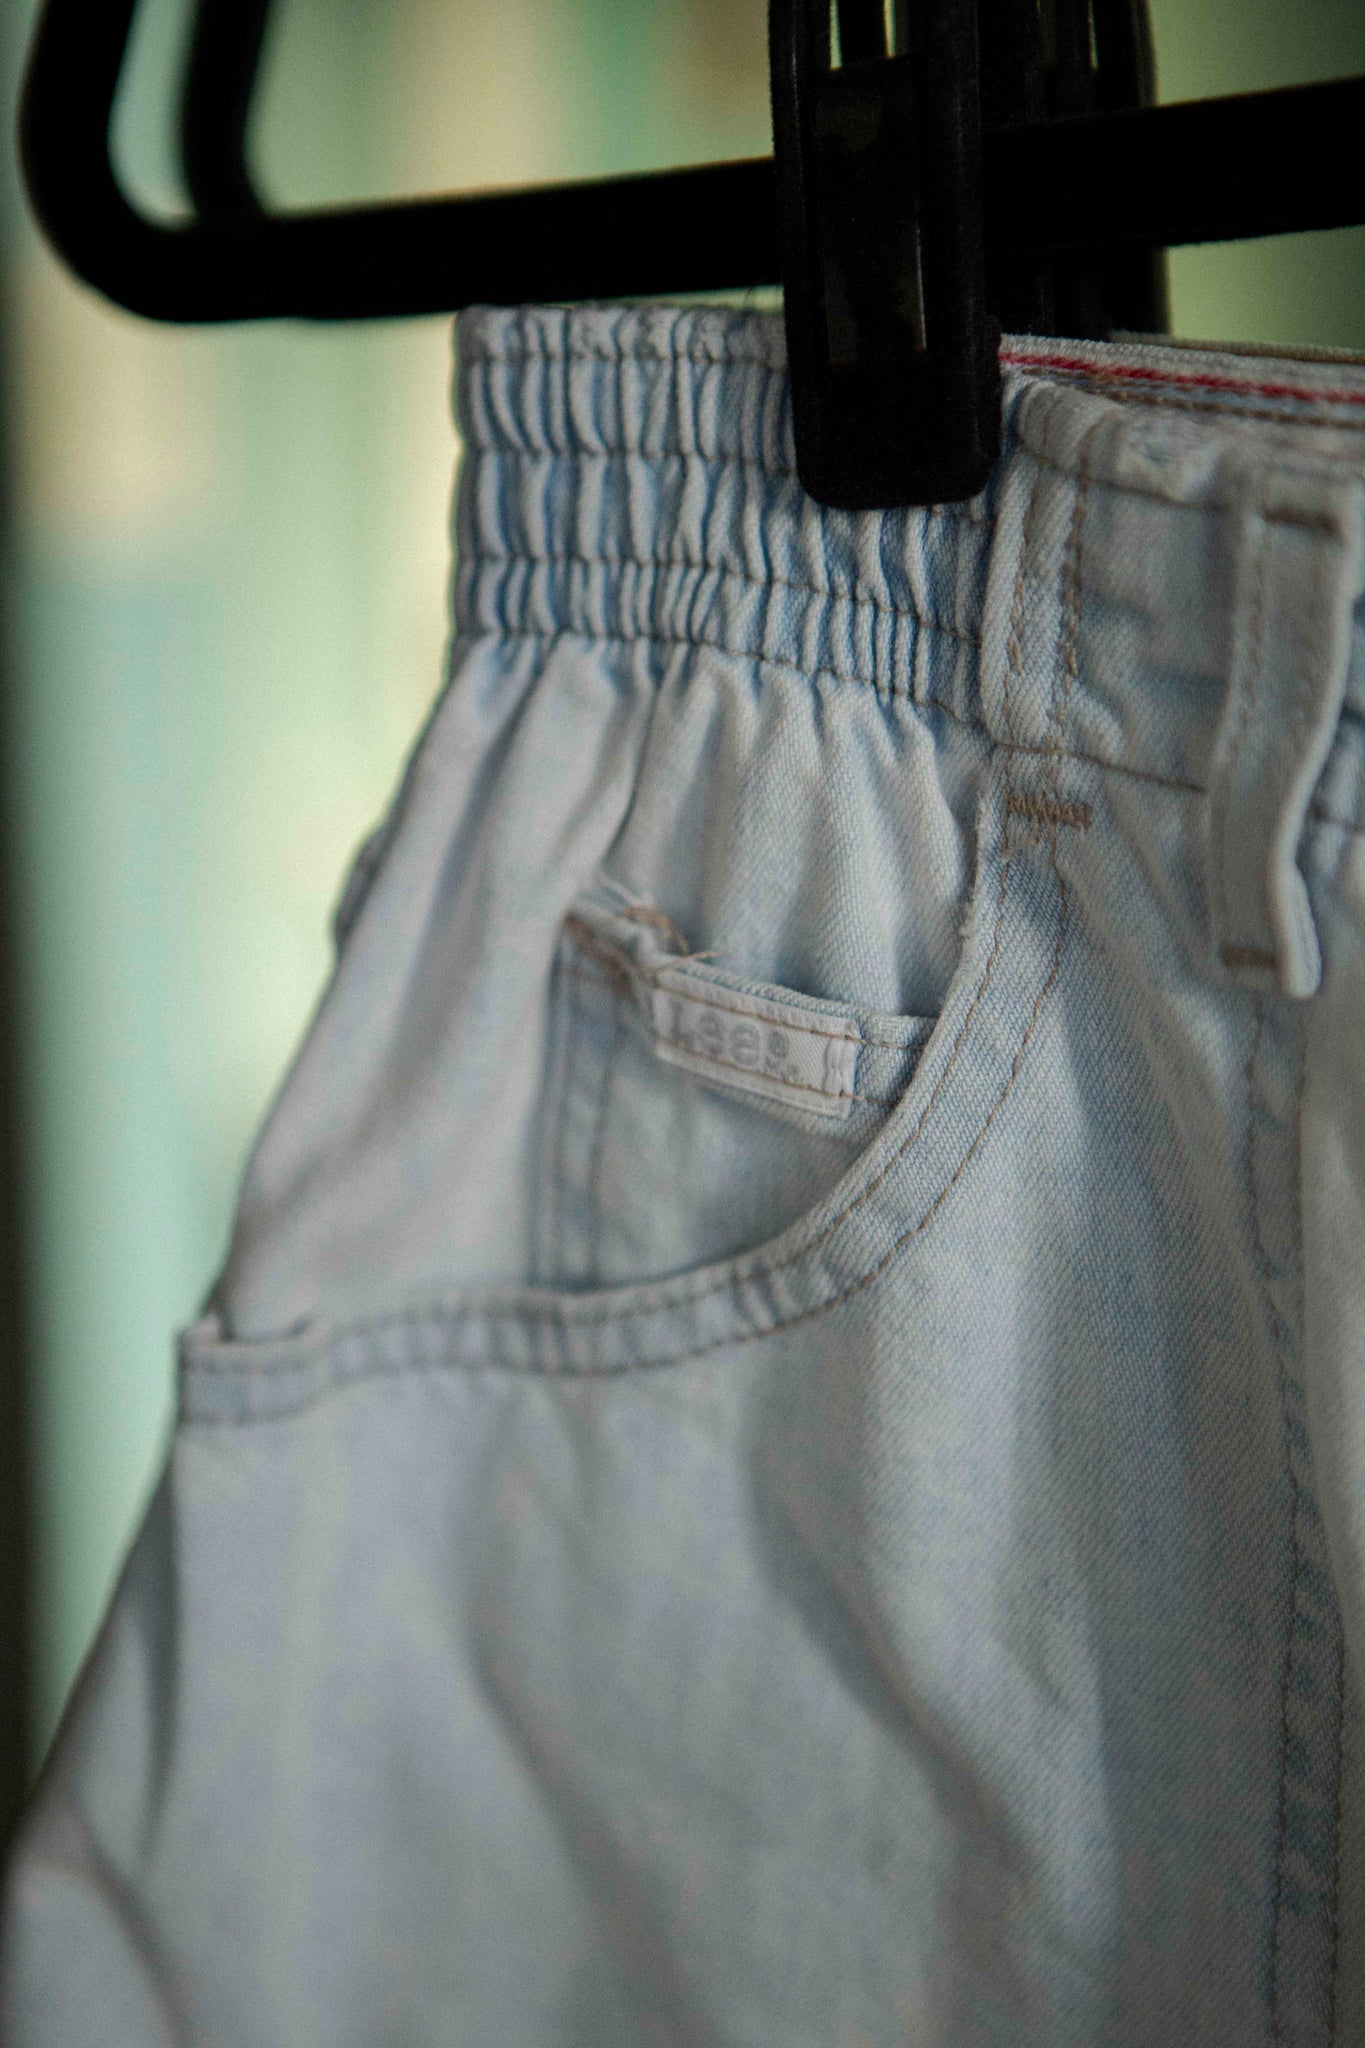 Vintage high rise Lee shorts in light wash